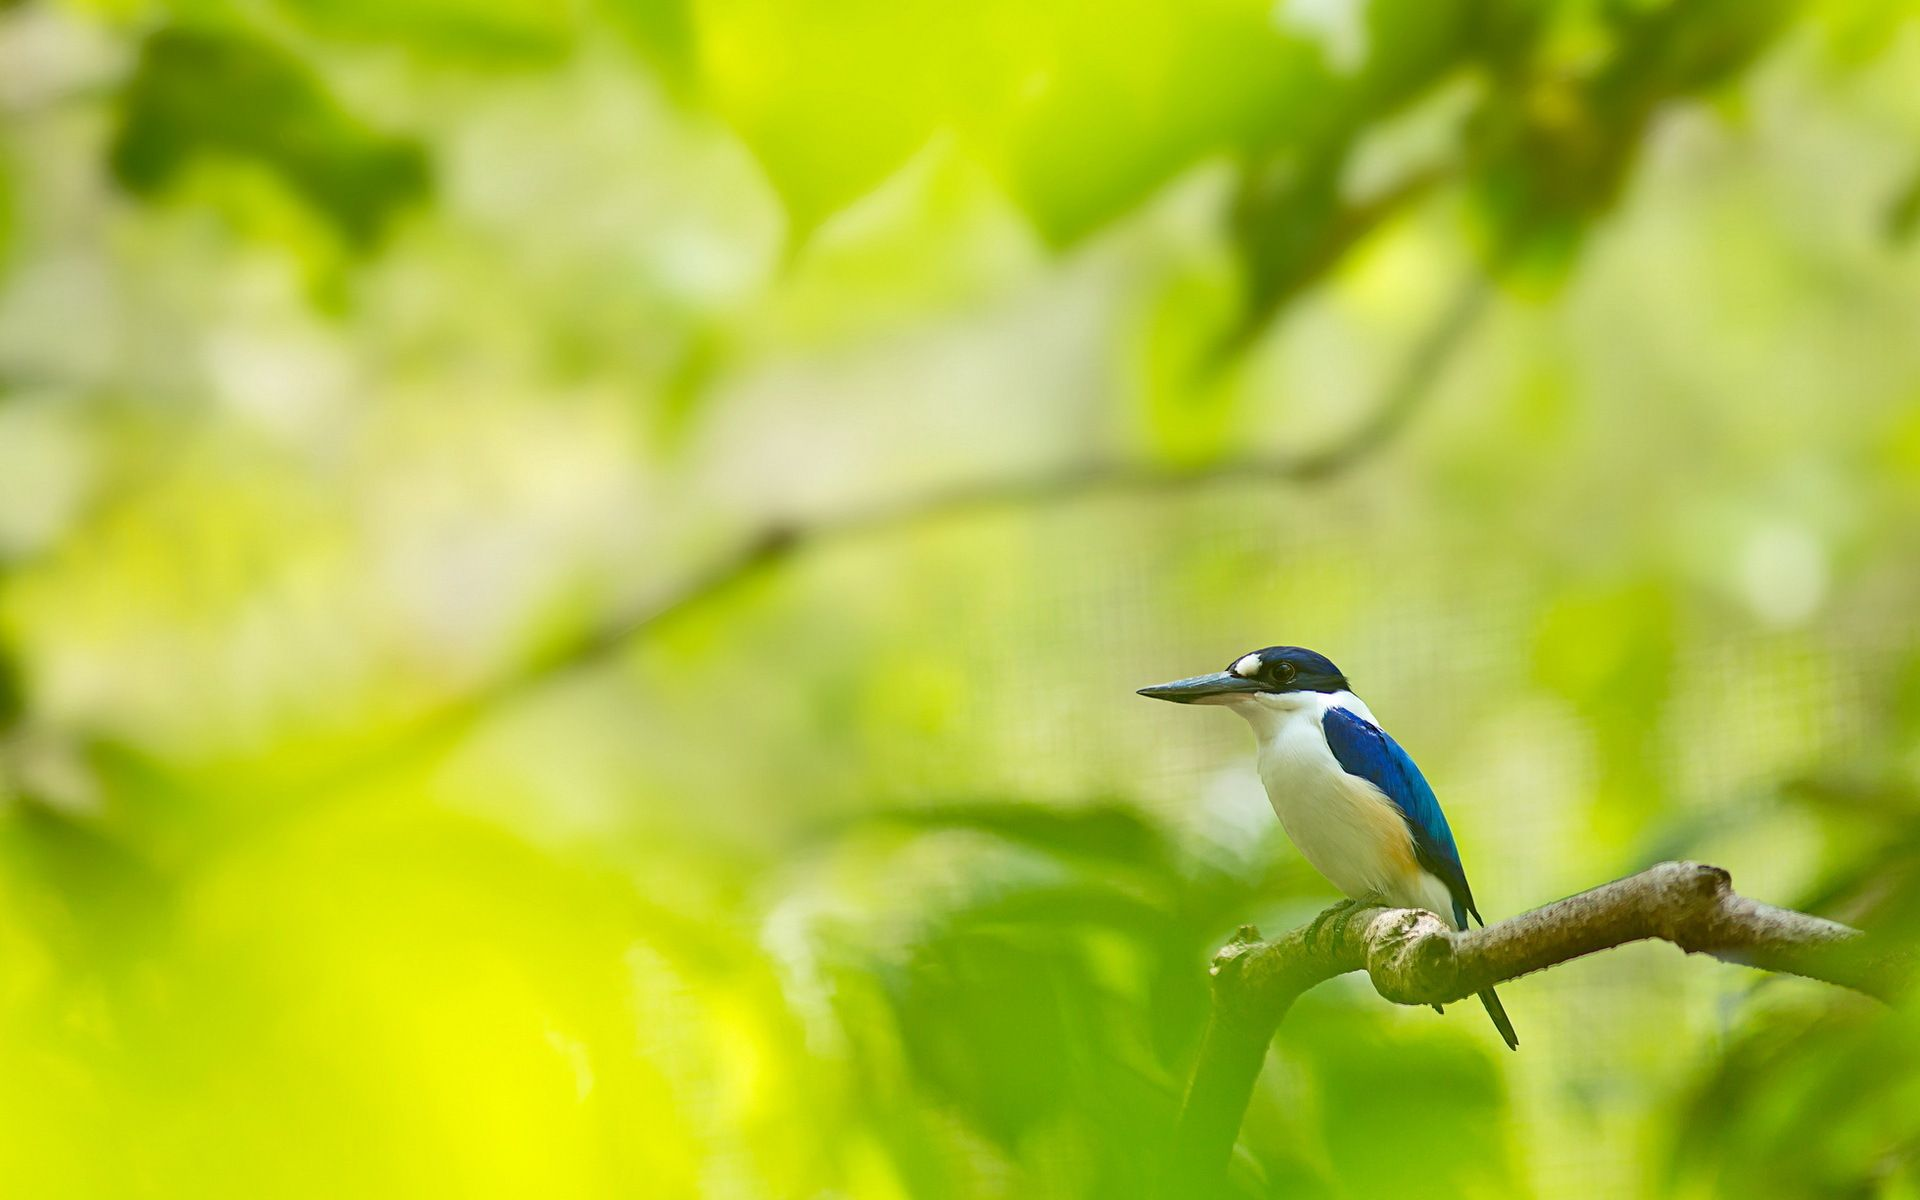 tropical blue bird hd desktop wallpaper widescreen high 1024a—768 bird pic wallpapers